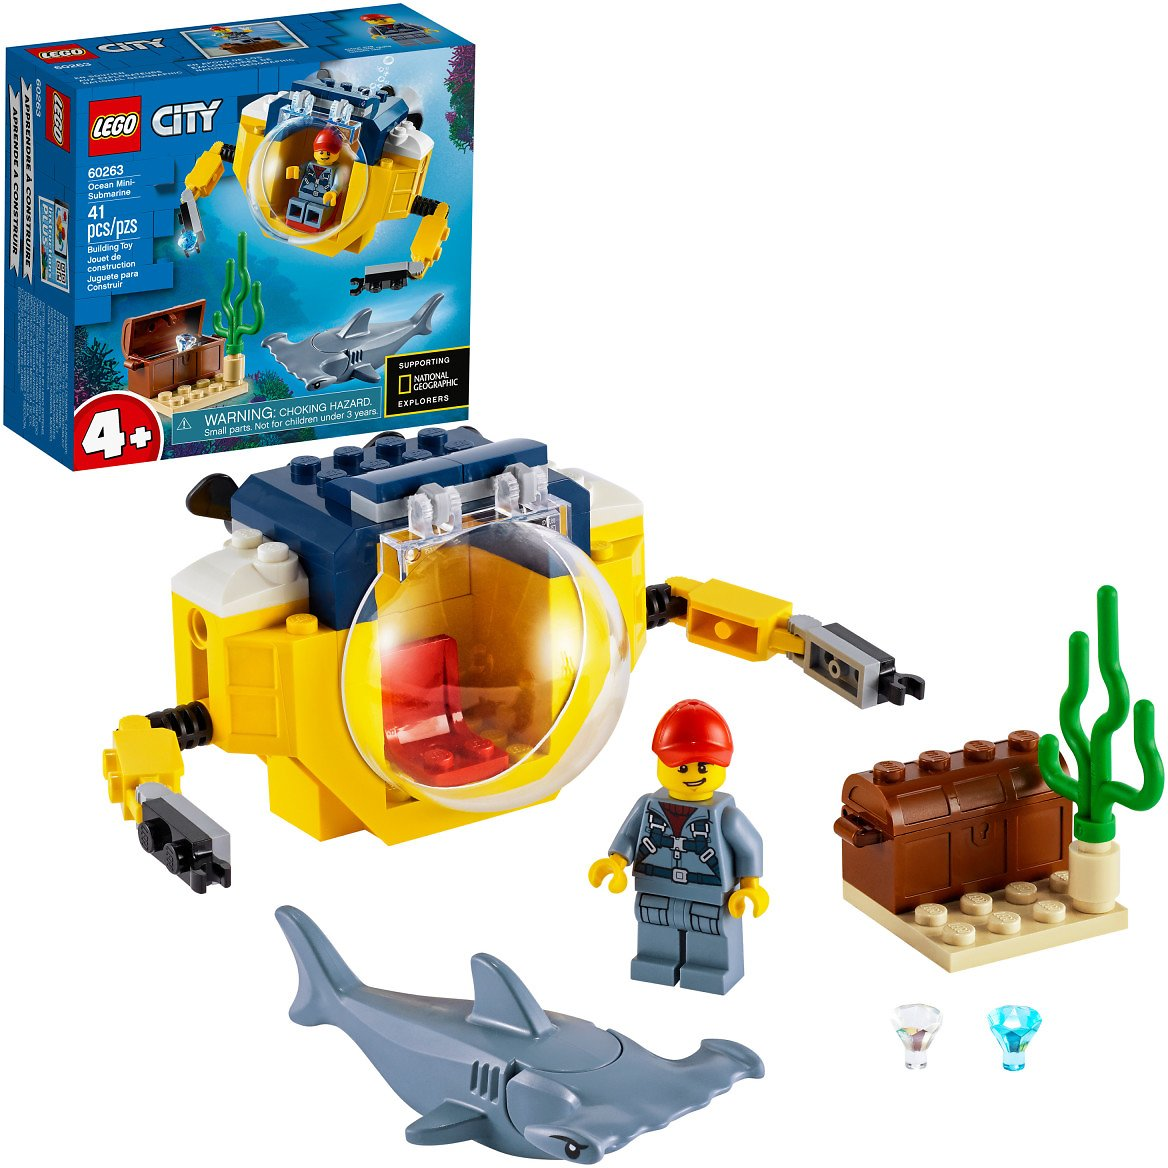 LEGO City Ocean Mini-Submarine 60263 Building Toy, for Kids 4+ (41 Pieces)